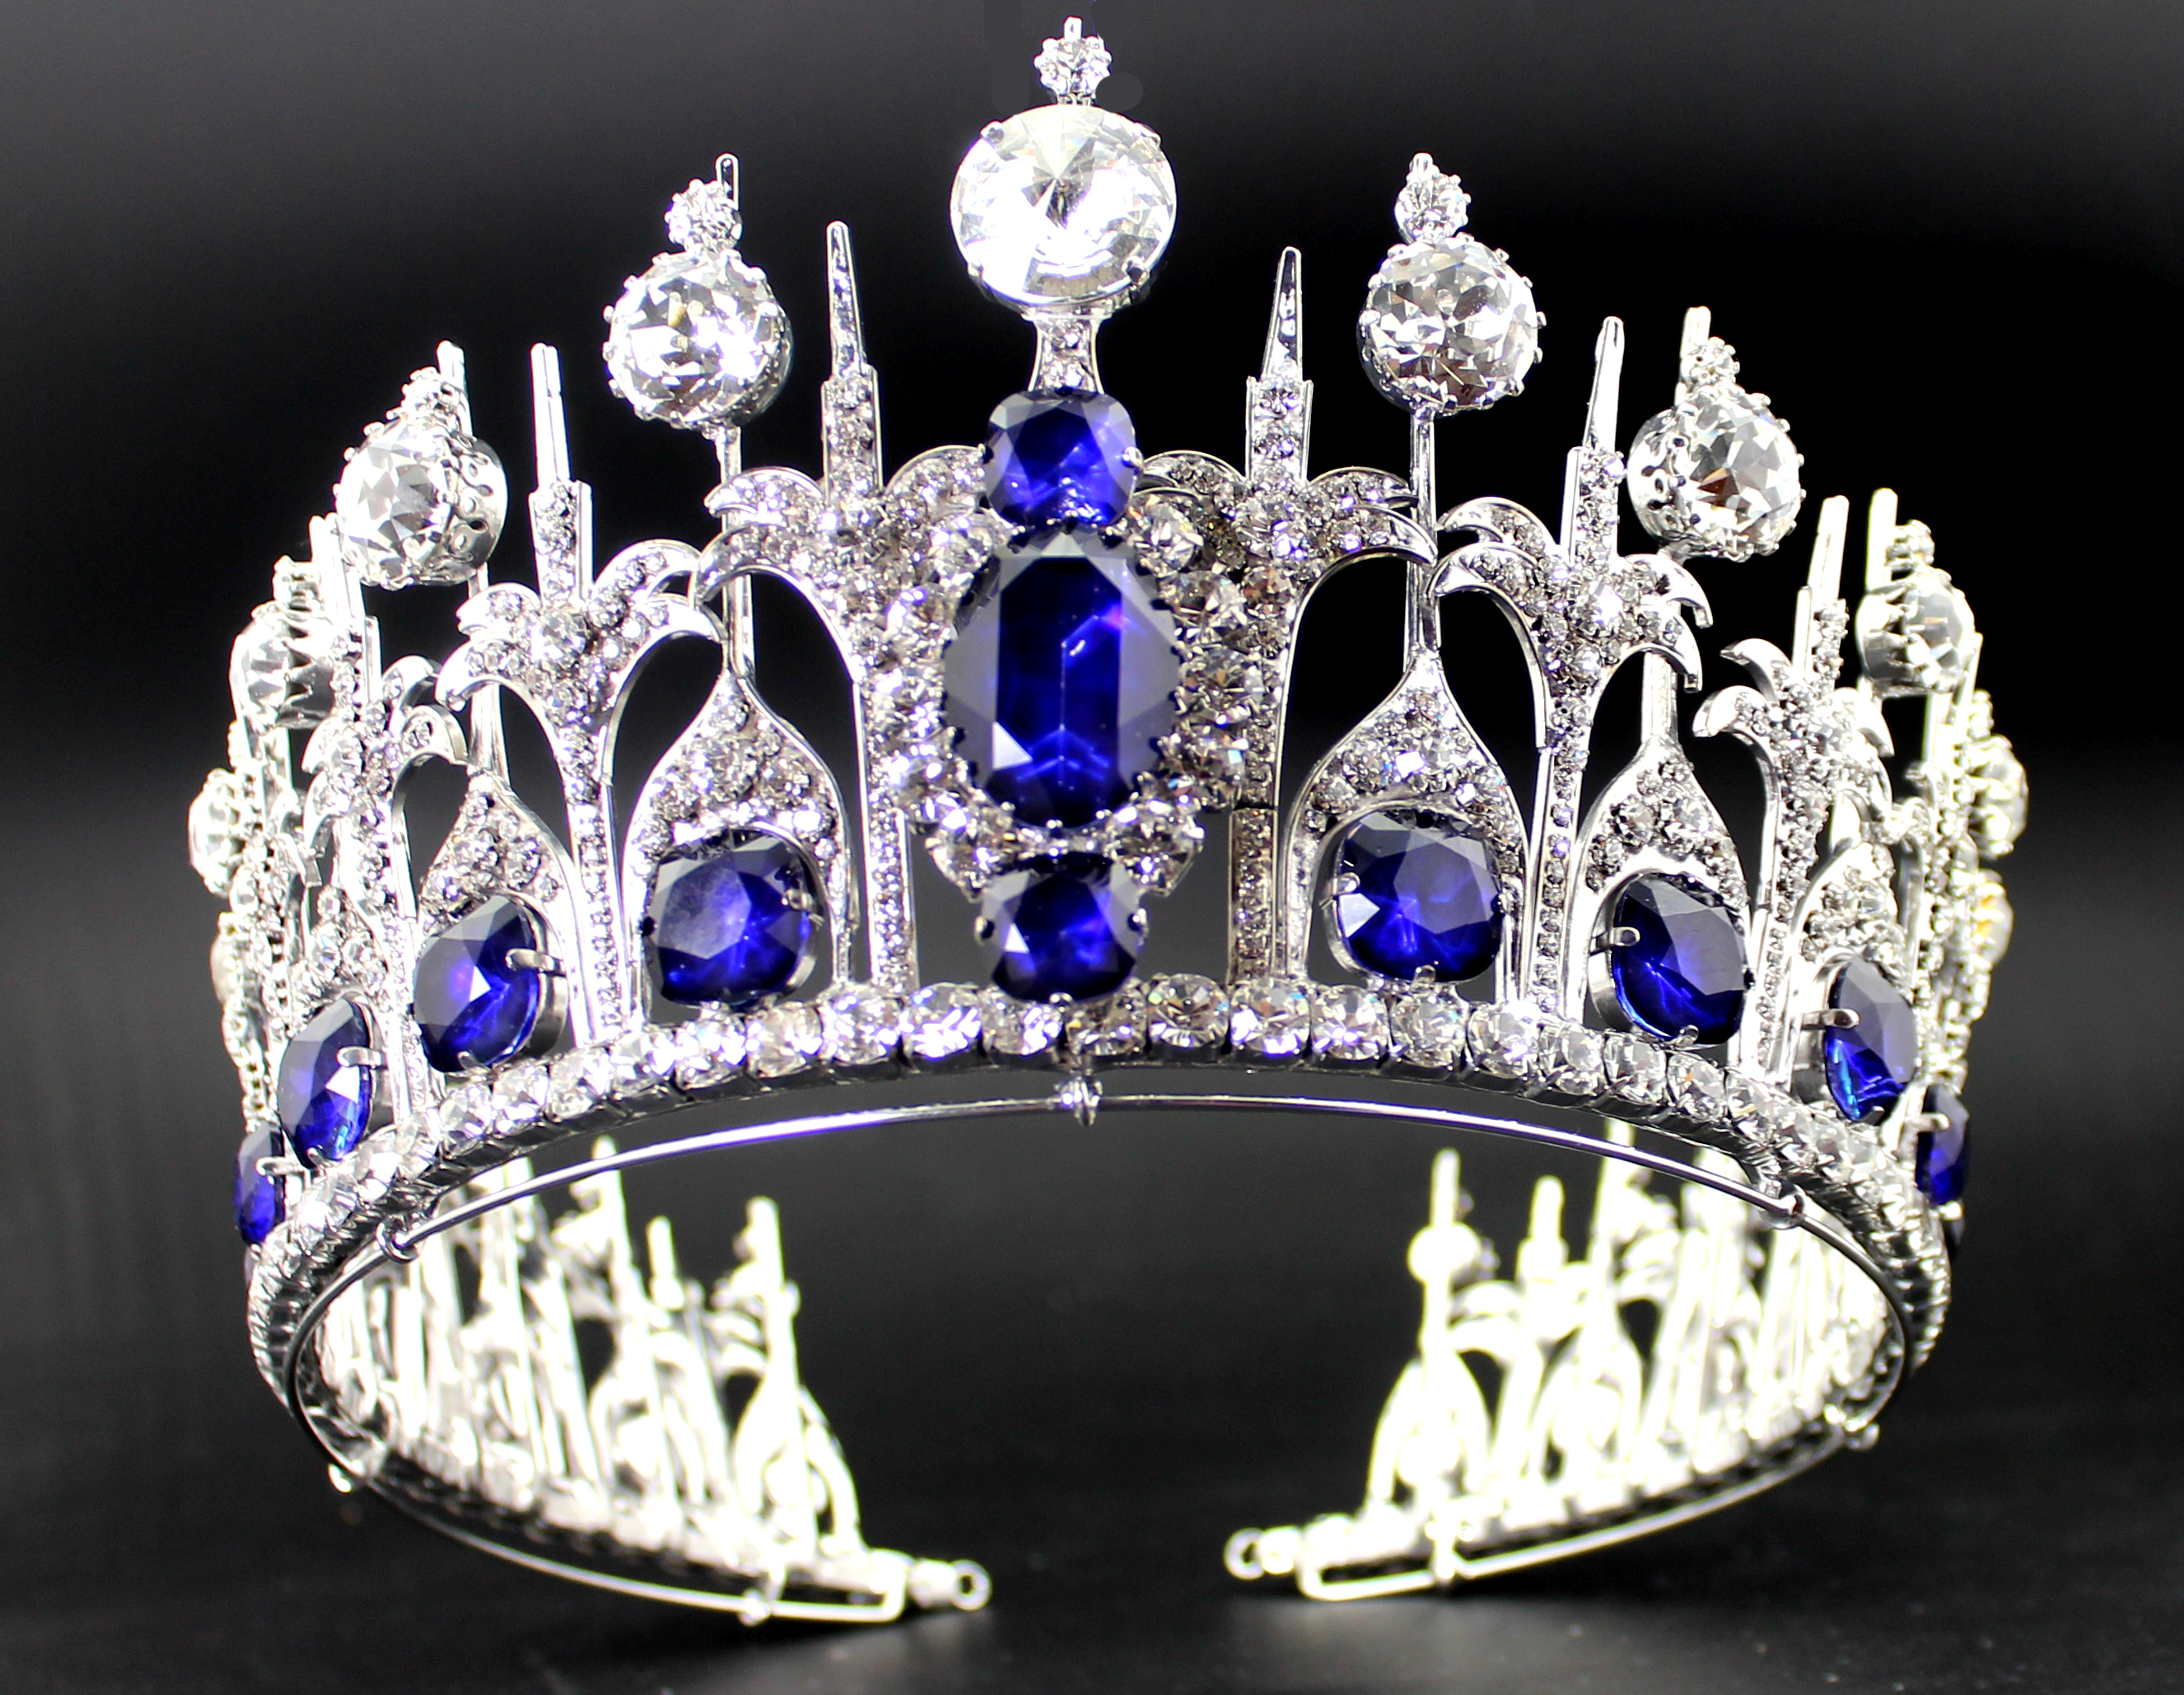 Austrian Royalty in addition 449656344020325785 additionally Crown jewels also Dutch Tiaras also British Crown Jewels Tiaras. on prussian crown jewls